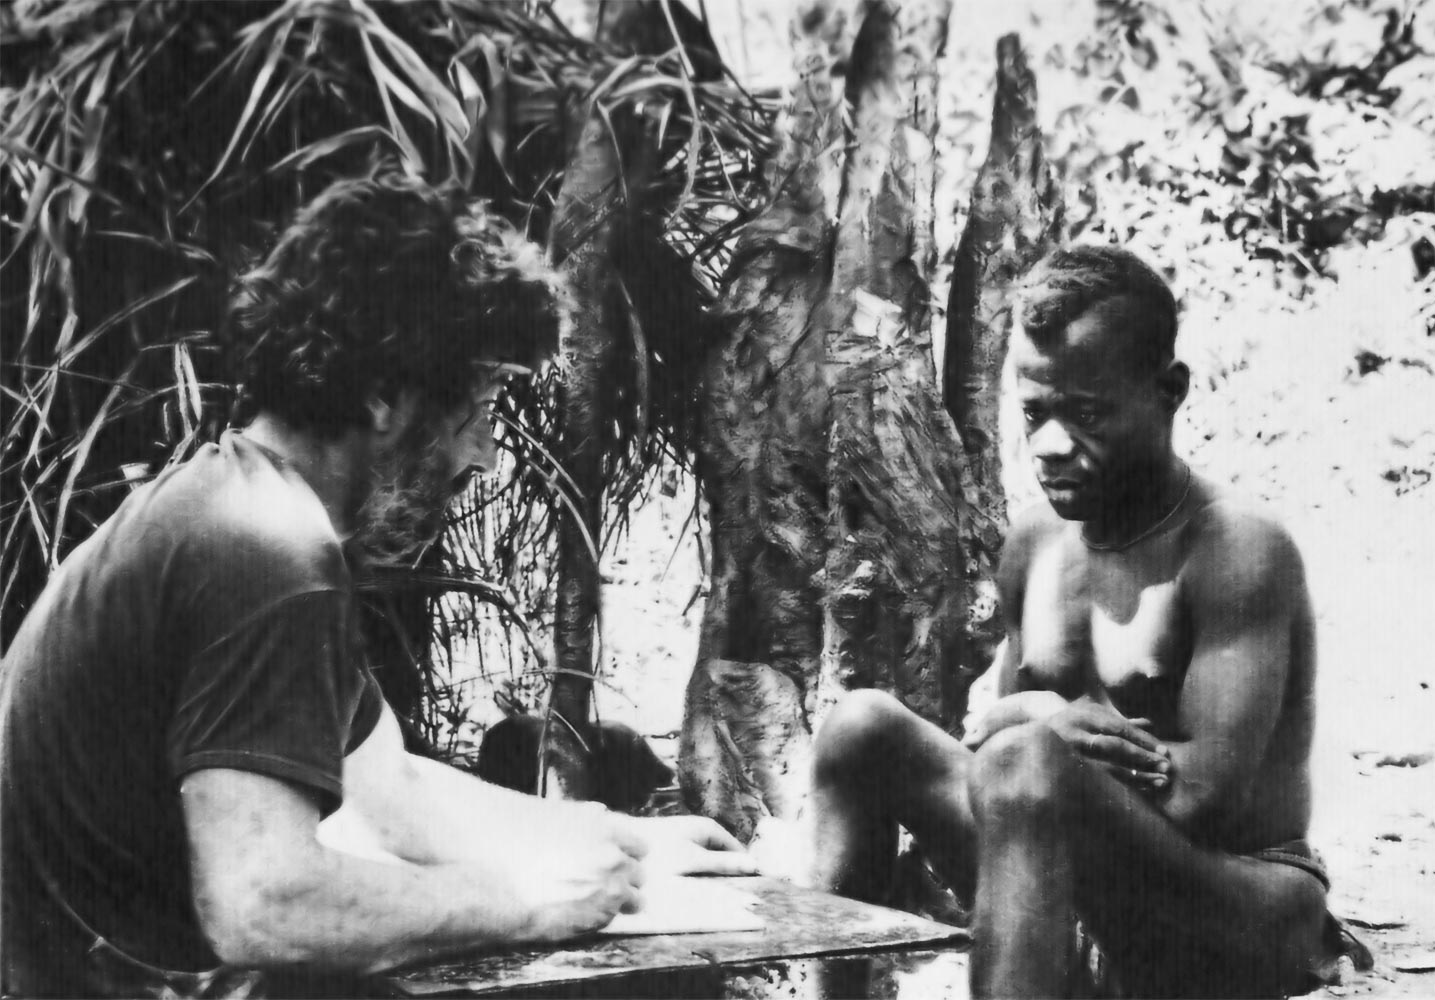 Dado among the Pygmies in 1974